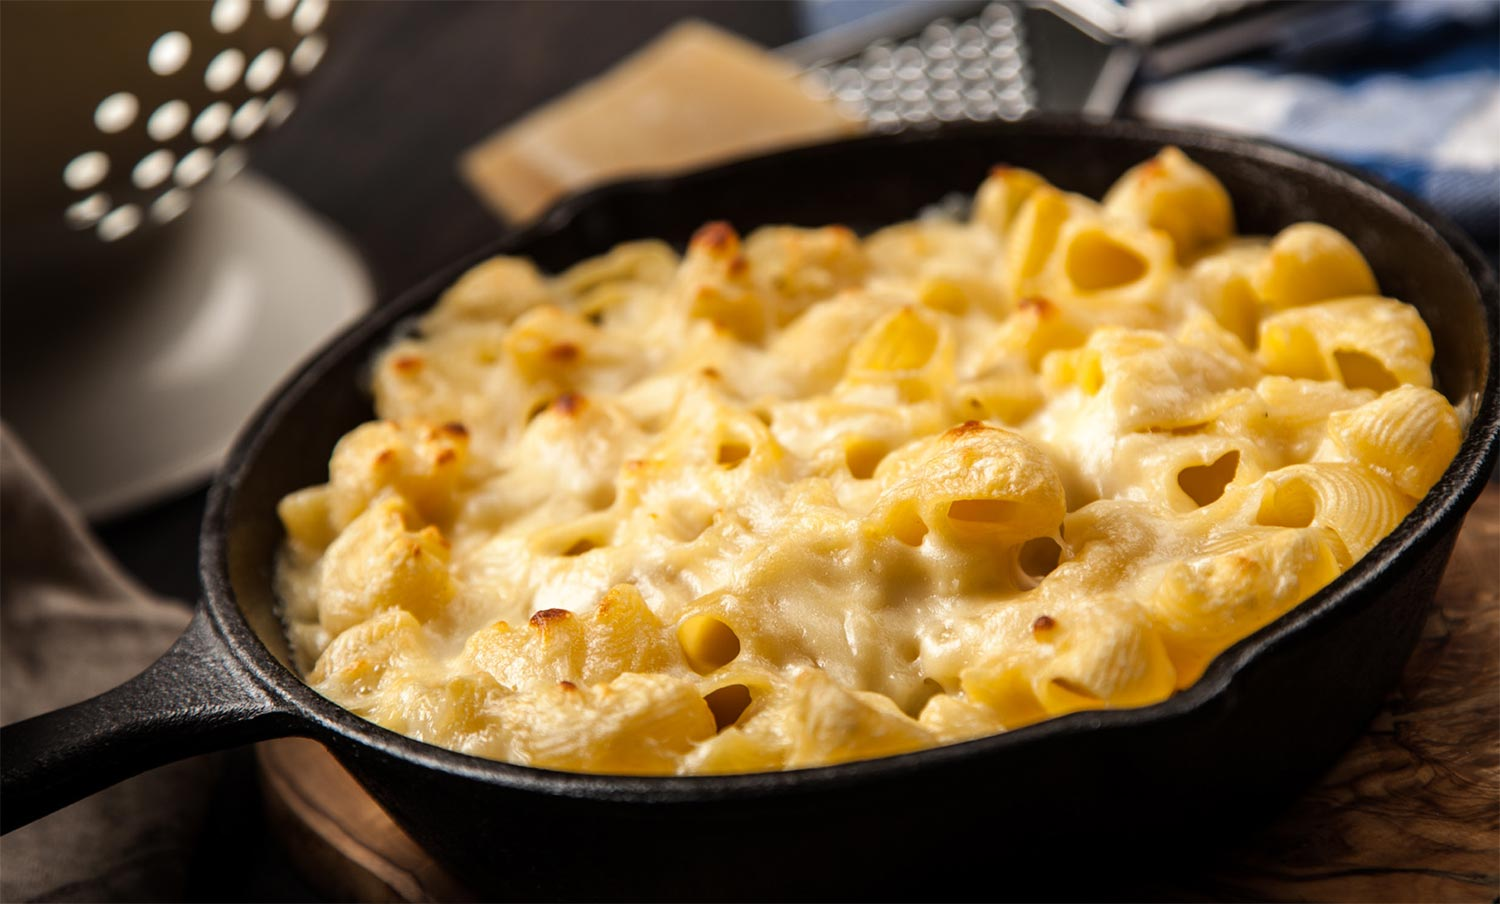 macncheese-large.jpg